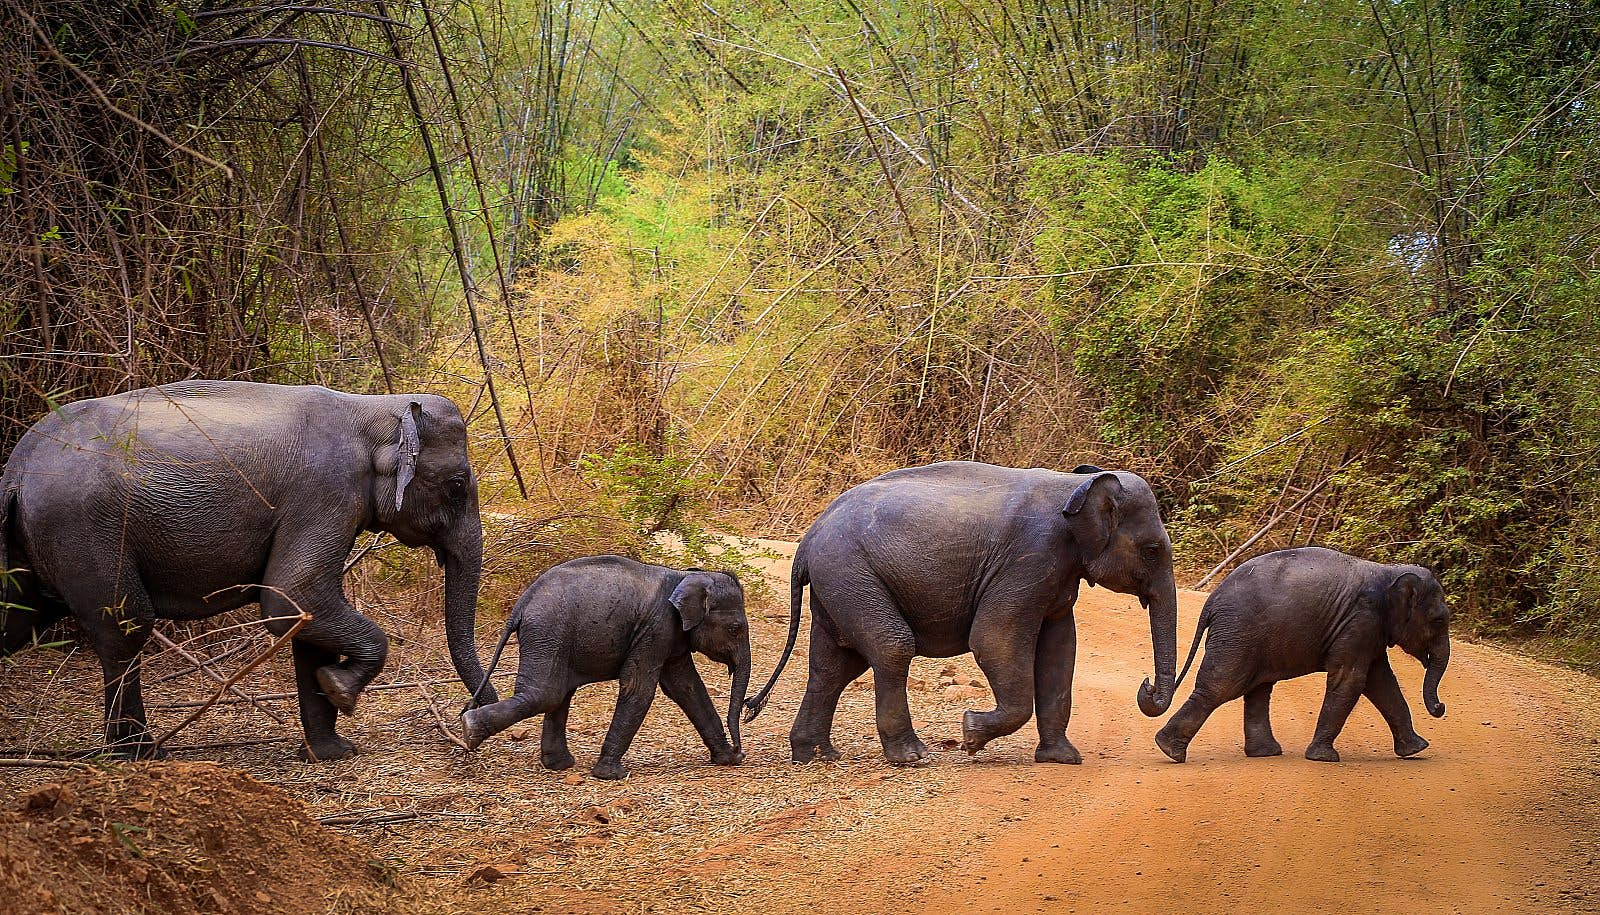 A family of elephants - two adults and two calves - crossing a tree-lined dirt road in Sri Lanka.